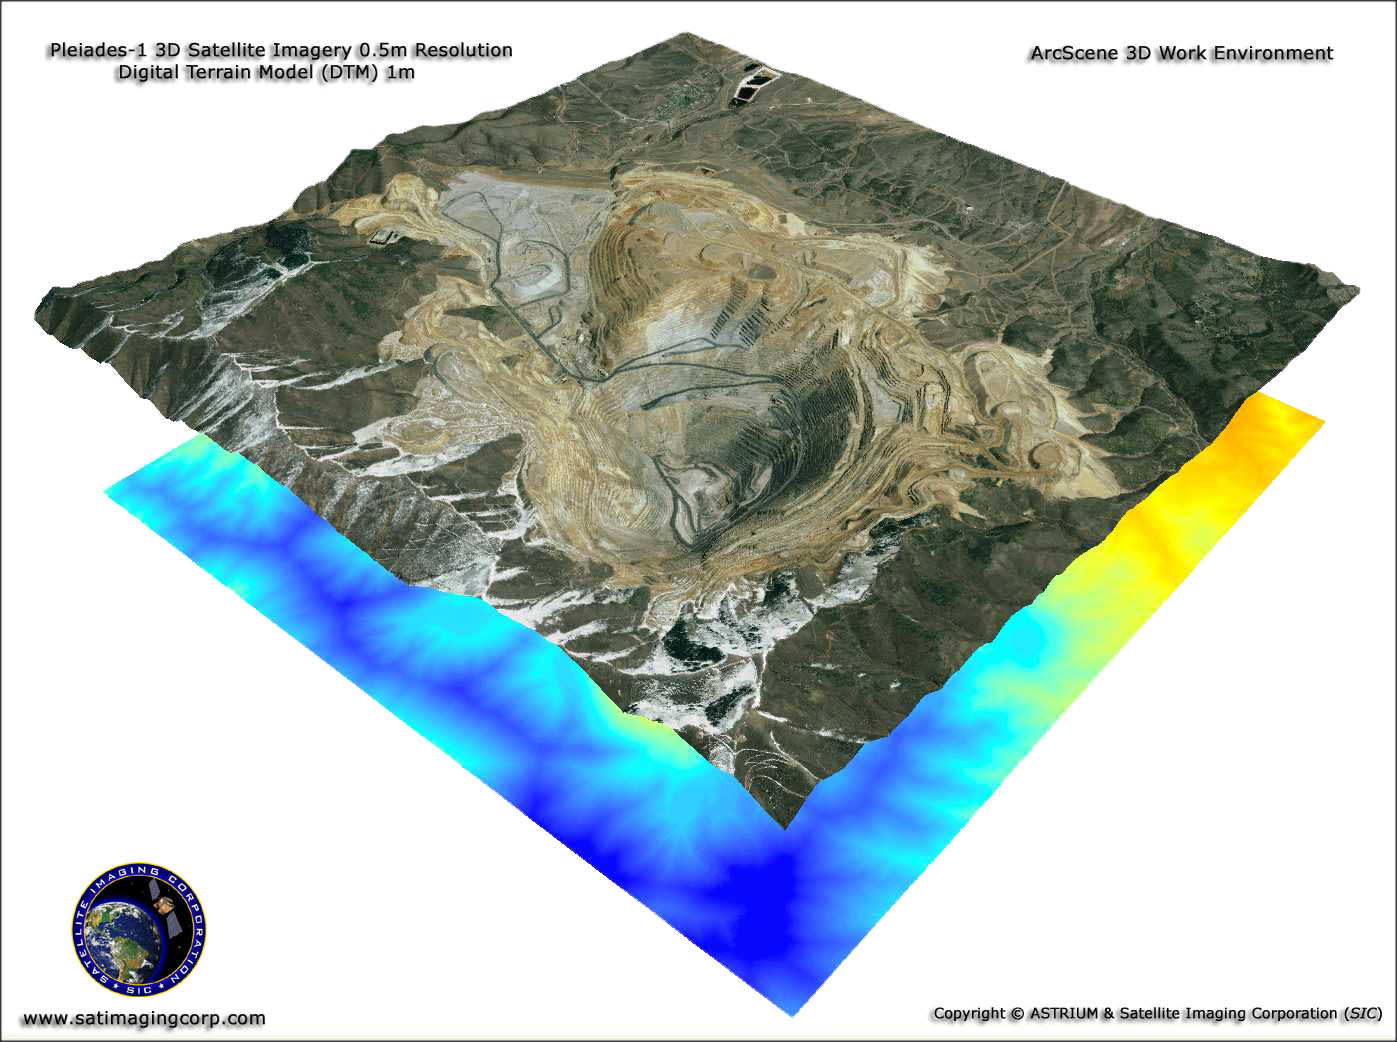 mineral exploration Mineral potentials ethiopia's mining sector is undergoing an enormous transformation with an increase in opportunities for investment asics kayano 21 femme adidas cloudfoam homme nike air zoom structure 20 a wide variety of mineral resources are available in ethiopia, according to recently conducted ge.